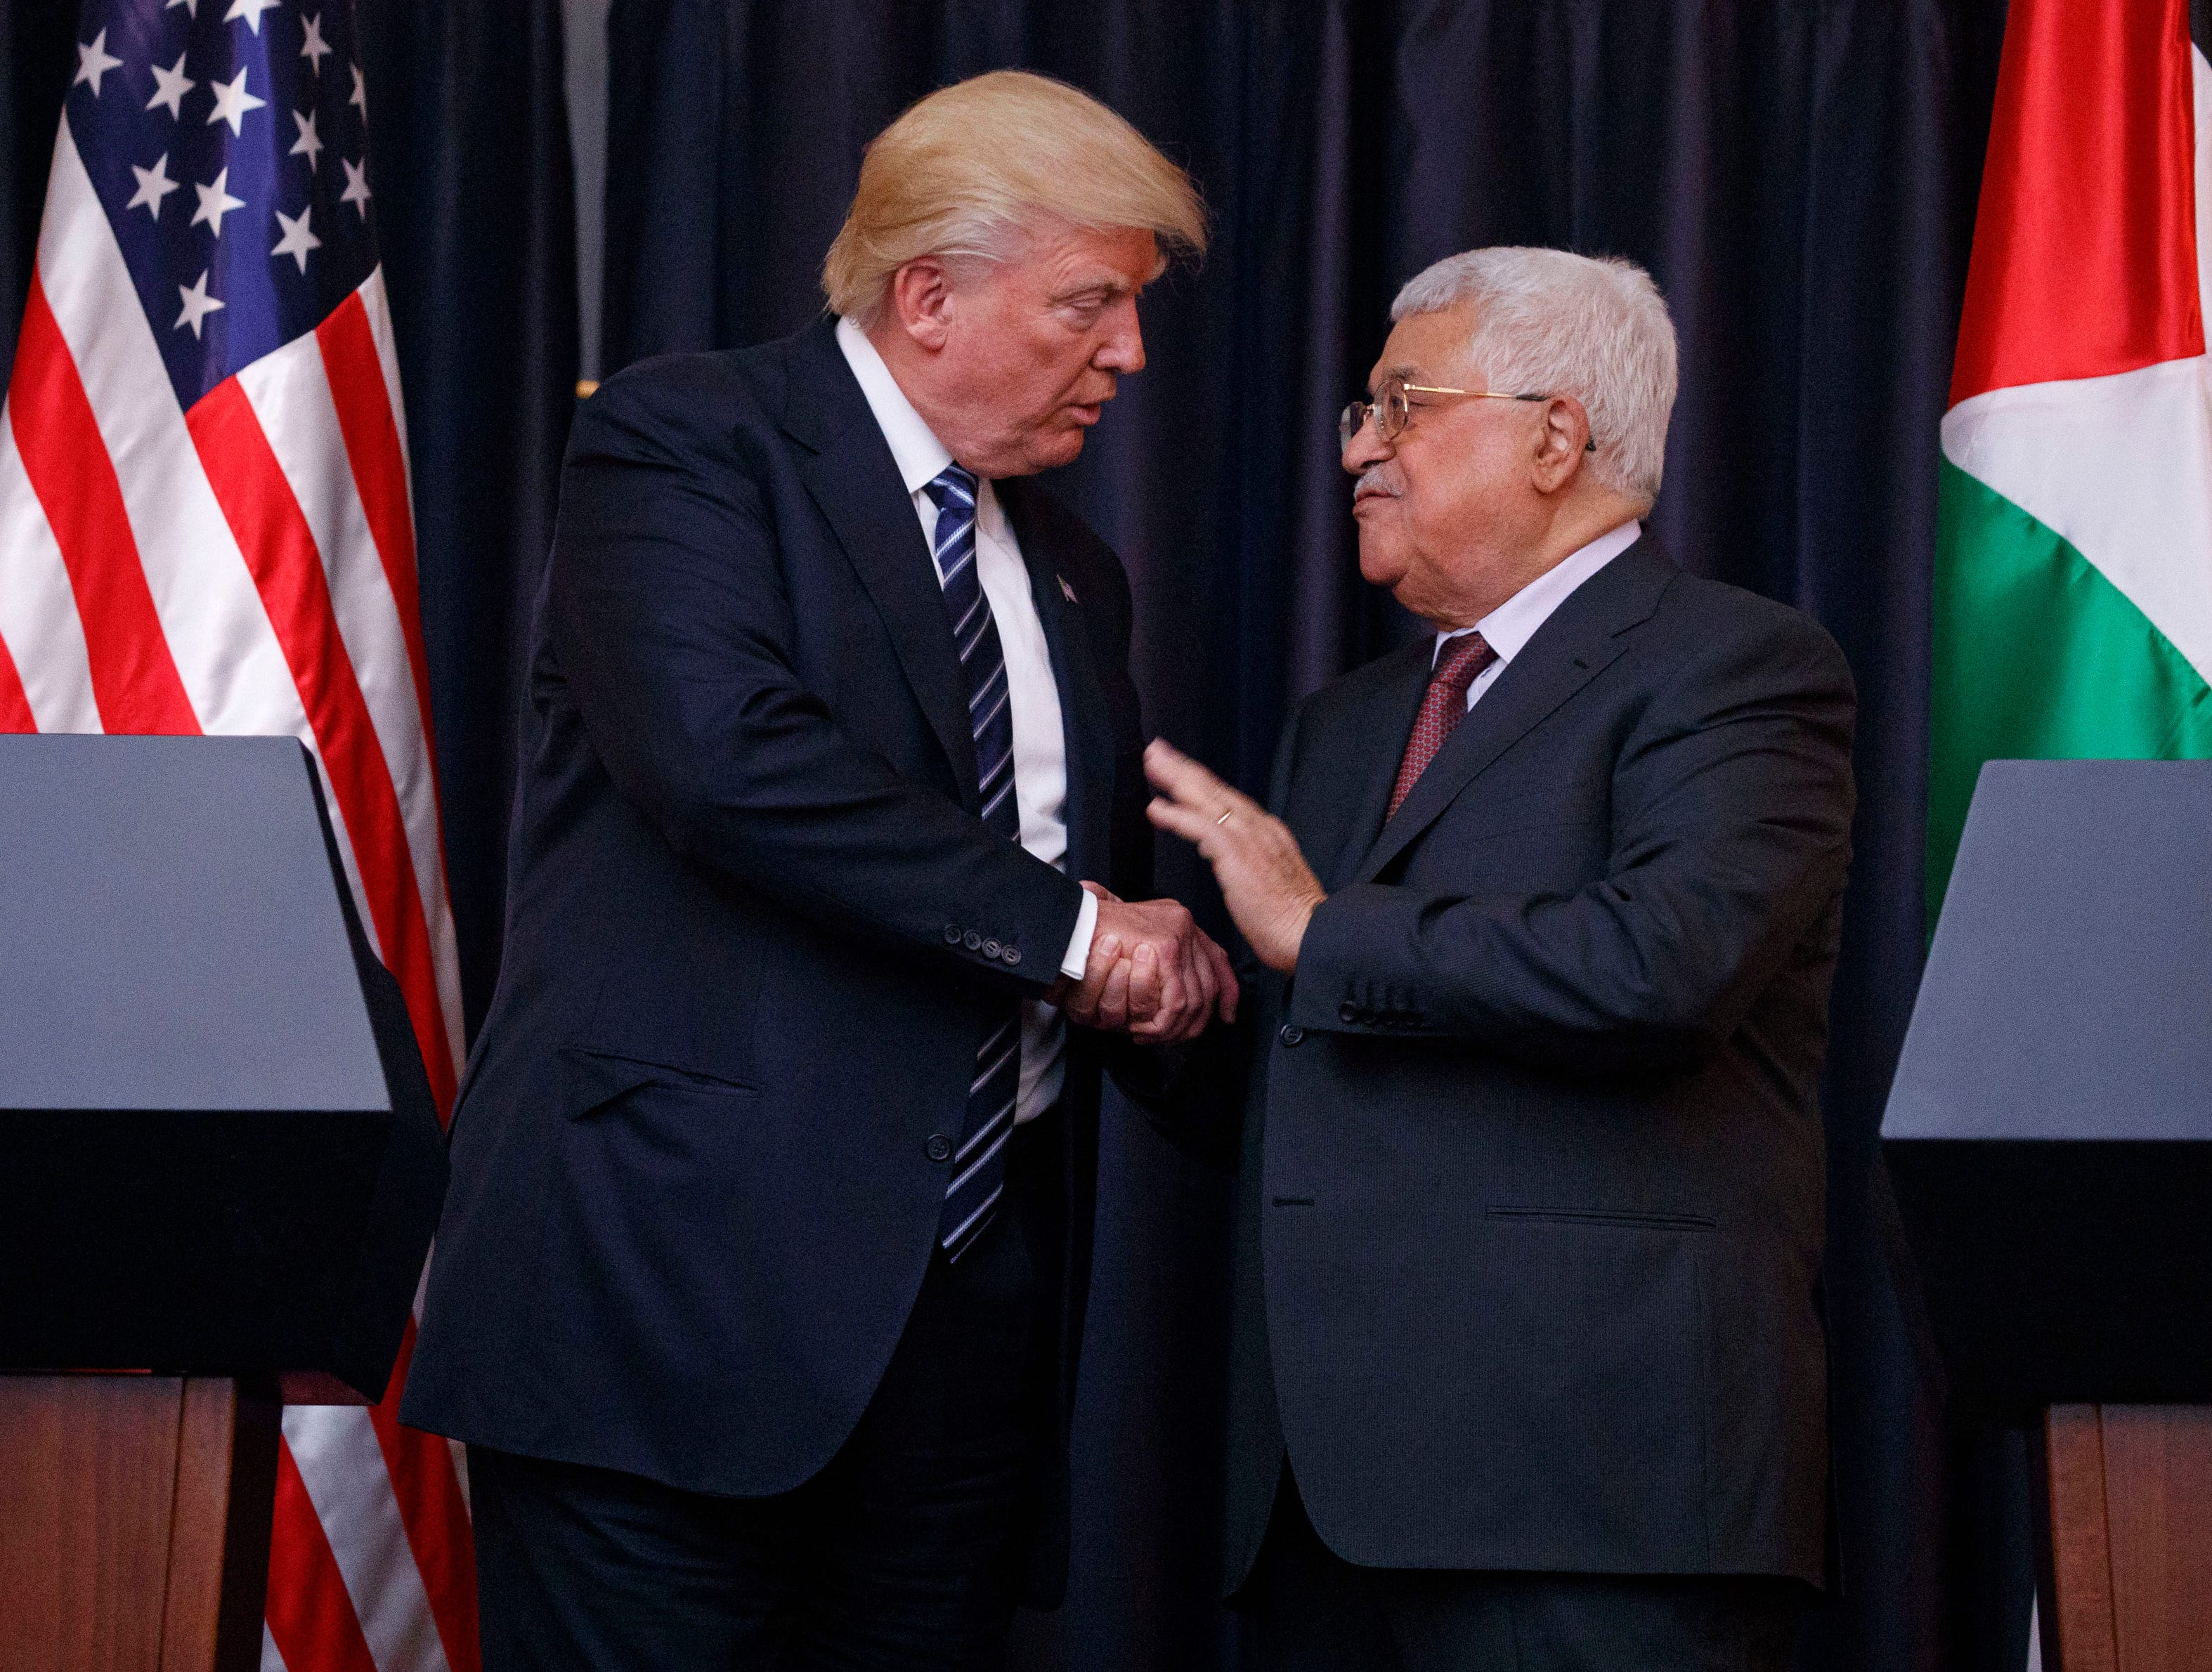 President Trump shakes hands with Palestinian President Mahmoud Abbas after making statements to the press in the West Bank City of Bethlehem on May 23, 2017.